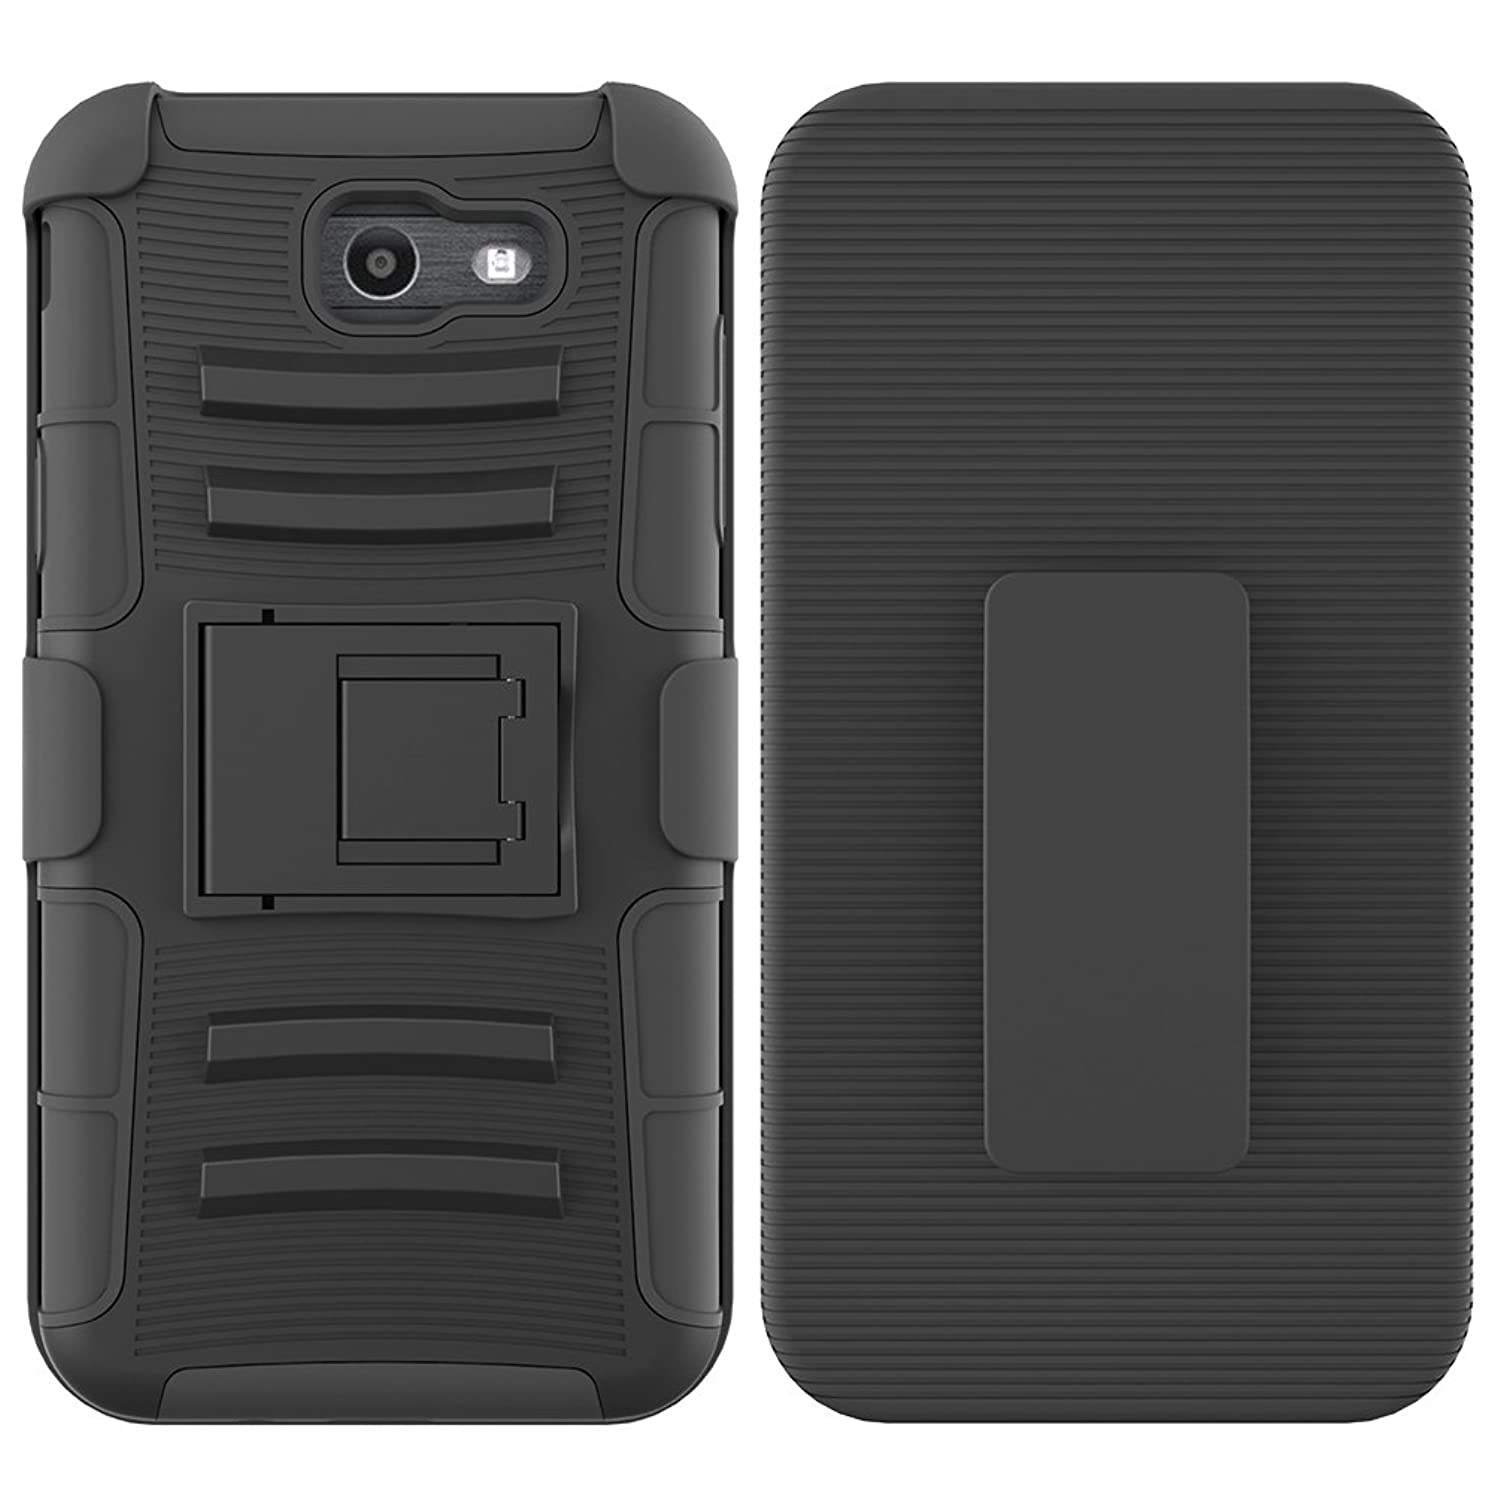 Samsung Galaxy J7 V Case/Galaxy J7 Perx Case/Galaxy J7 Sky Pro/J7 Prime/Galaxy Halo/J7 2017 Case, UZER Shockproof High Impact Resistant Armor Shell Holster Cover with Kickstand and Belt Swivel Clip